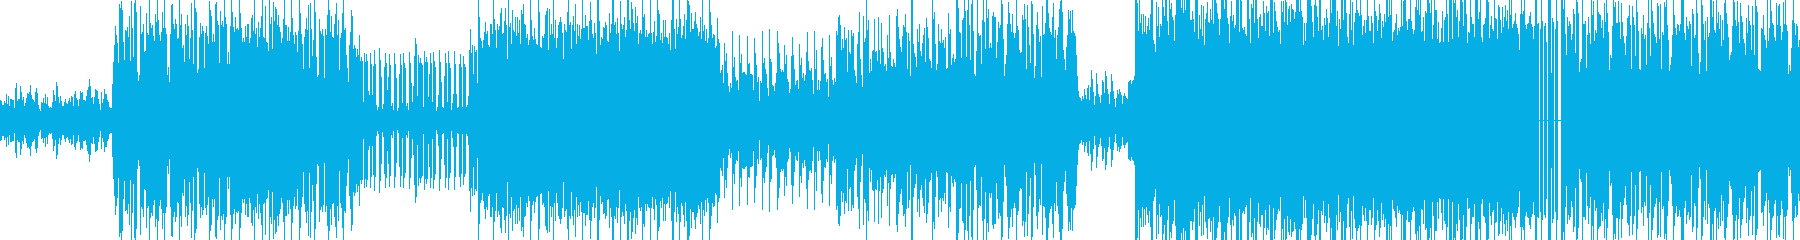 The main driving music is a piano with a sense of speed's reproduced waveform